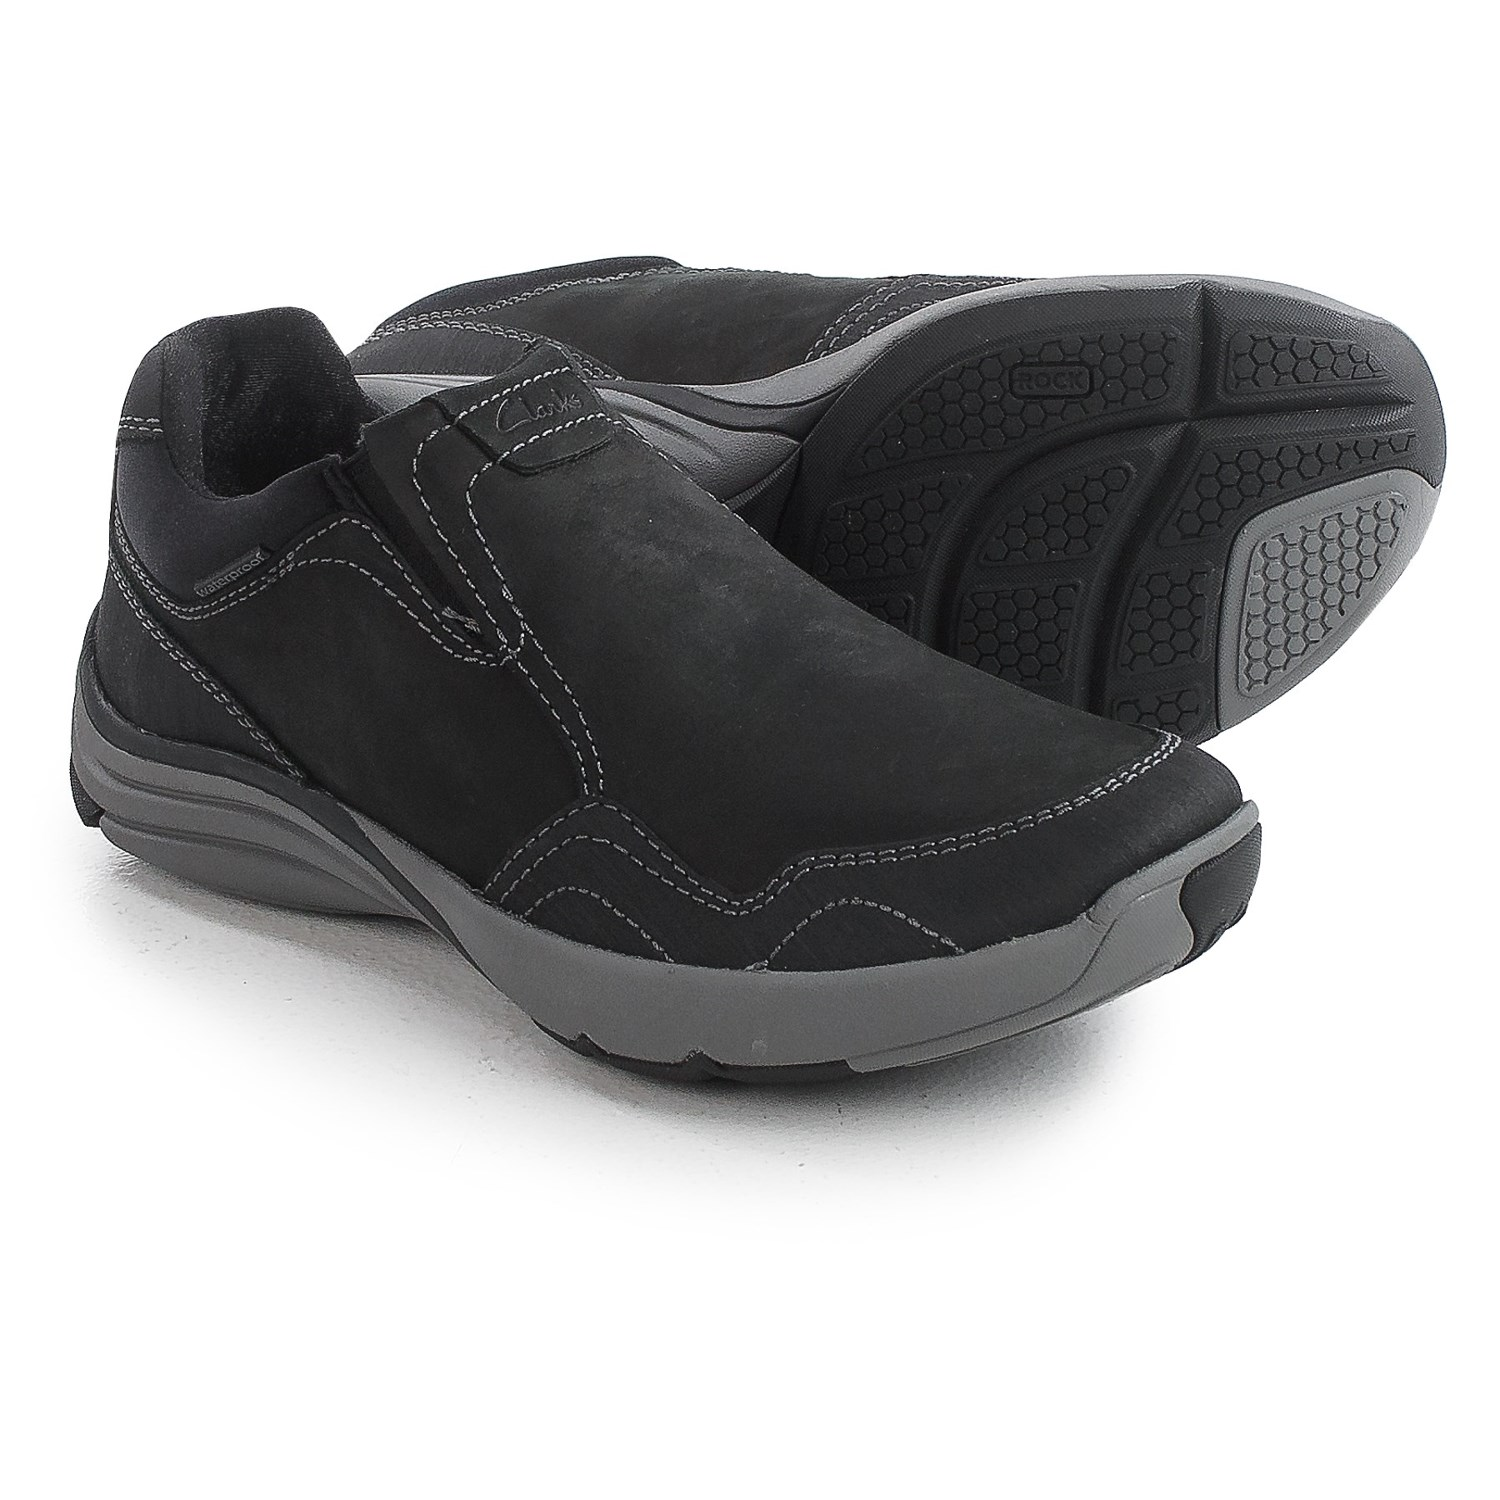 Clarks Wave Voyage Shoes Nubuck Slip Ons For Men In Black